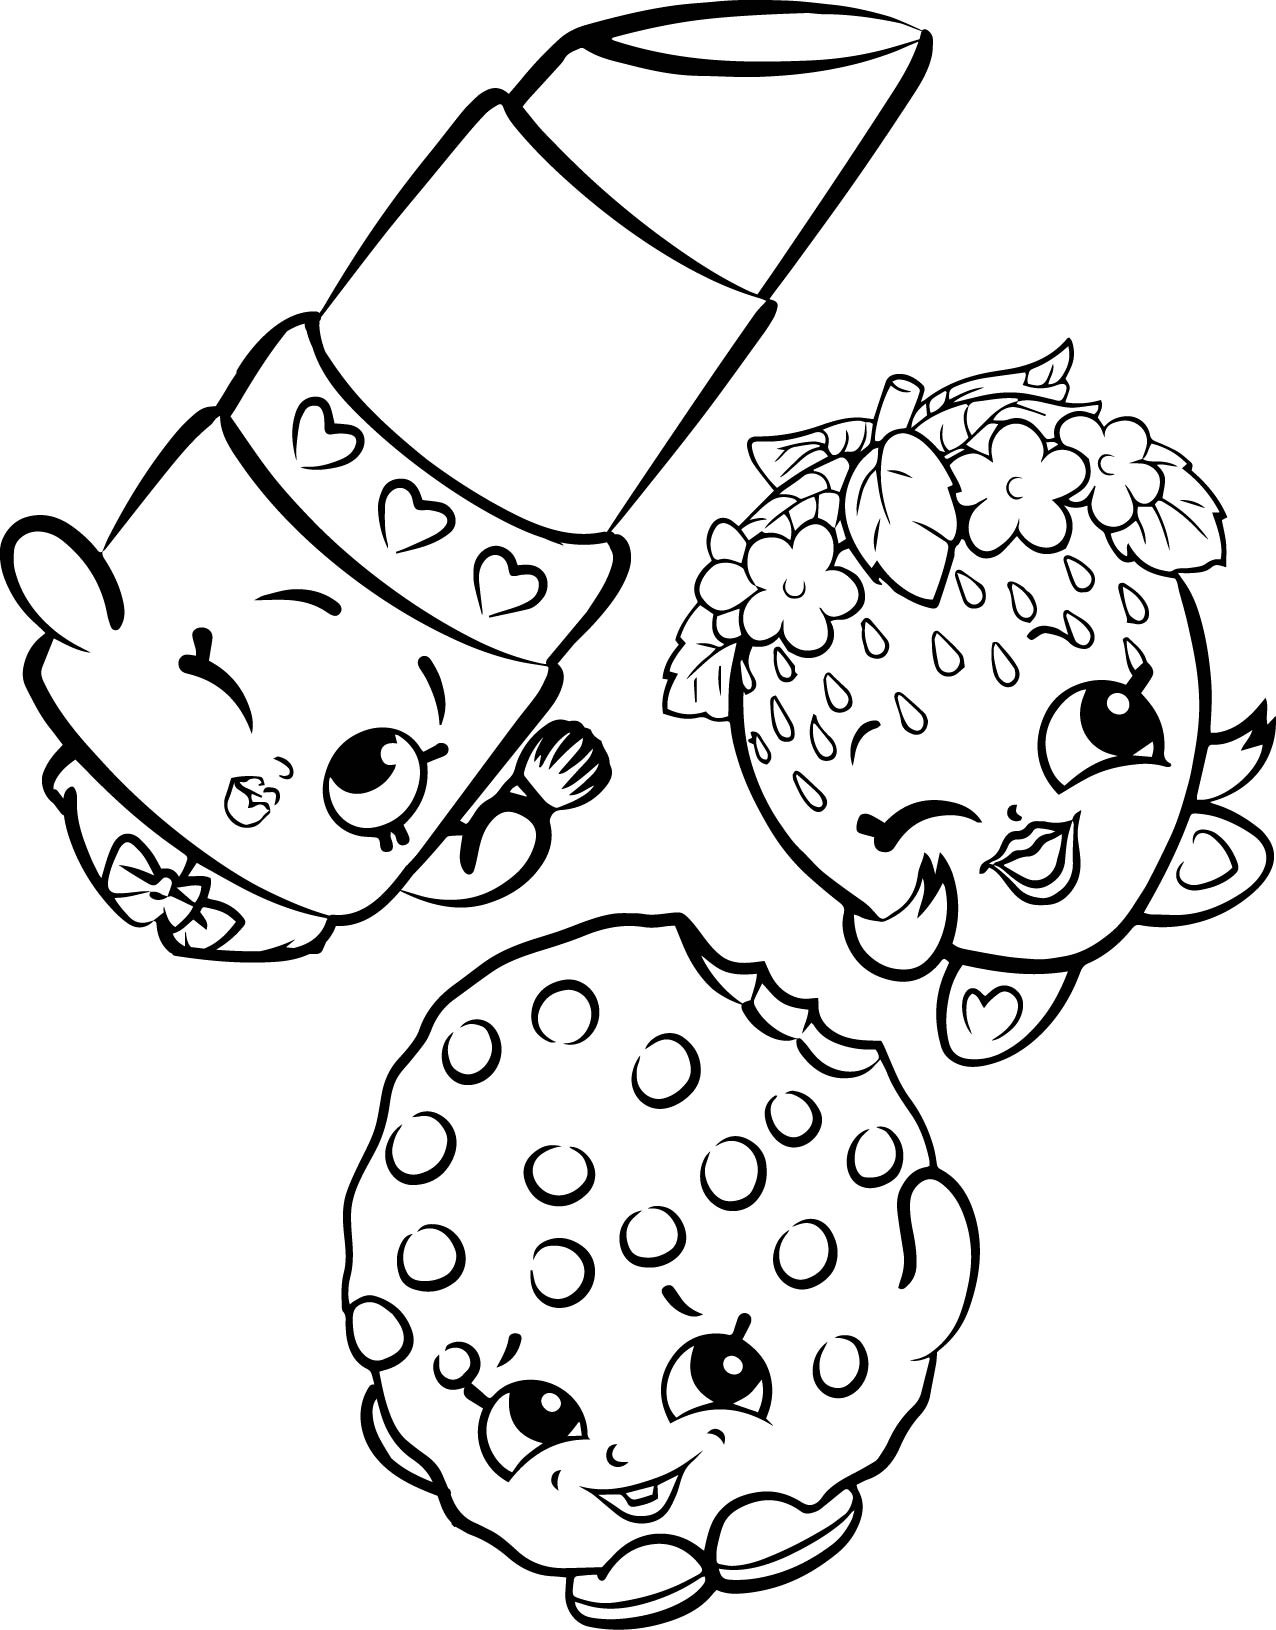 1276x1630 Shopkins Coloring Pages Fun Zone Shopkins Coloring Page Shopkins